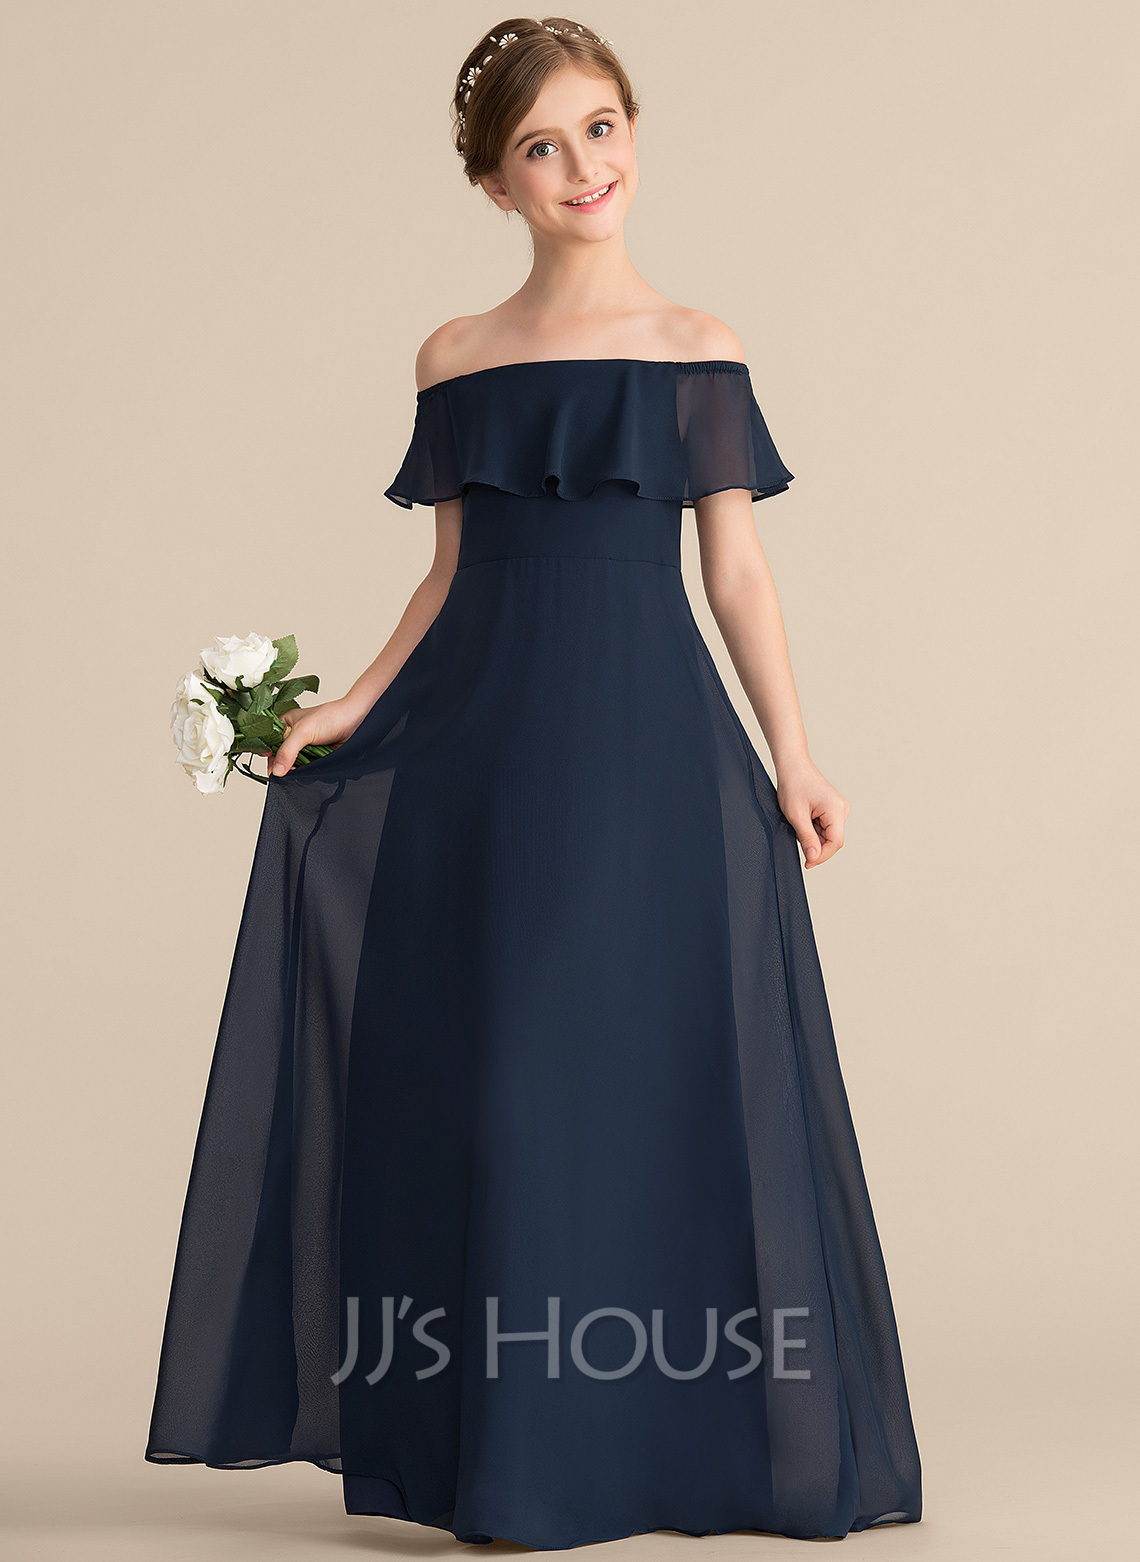 1280b2a6da A-Line Princess Off-the-Shoulder Floor-Length Chiffon Junior Bridesmaid  Dress With Cascading Ruffles  165021